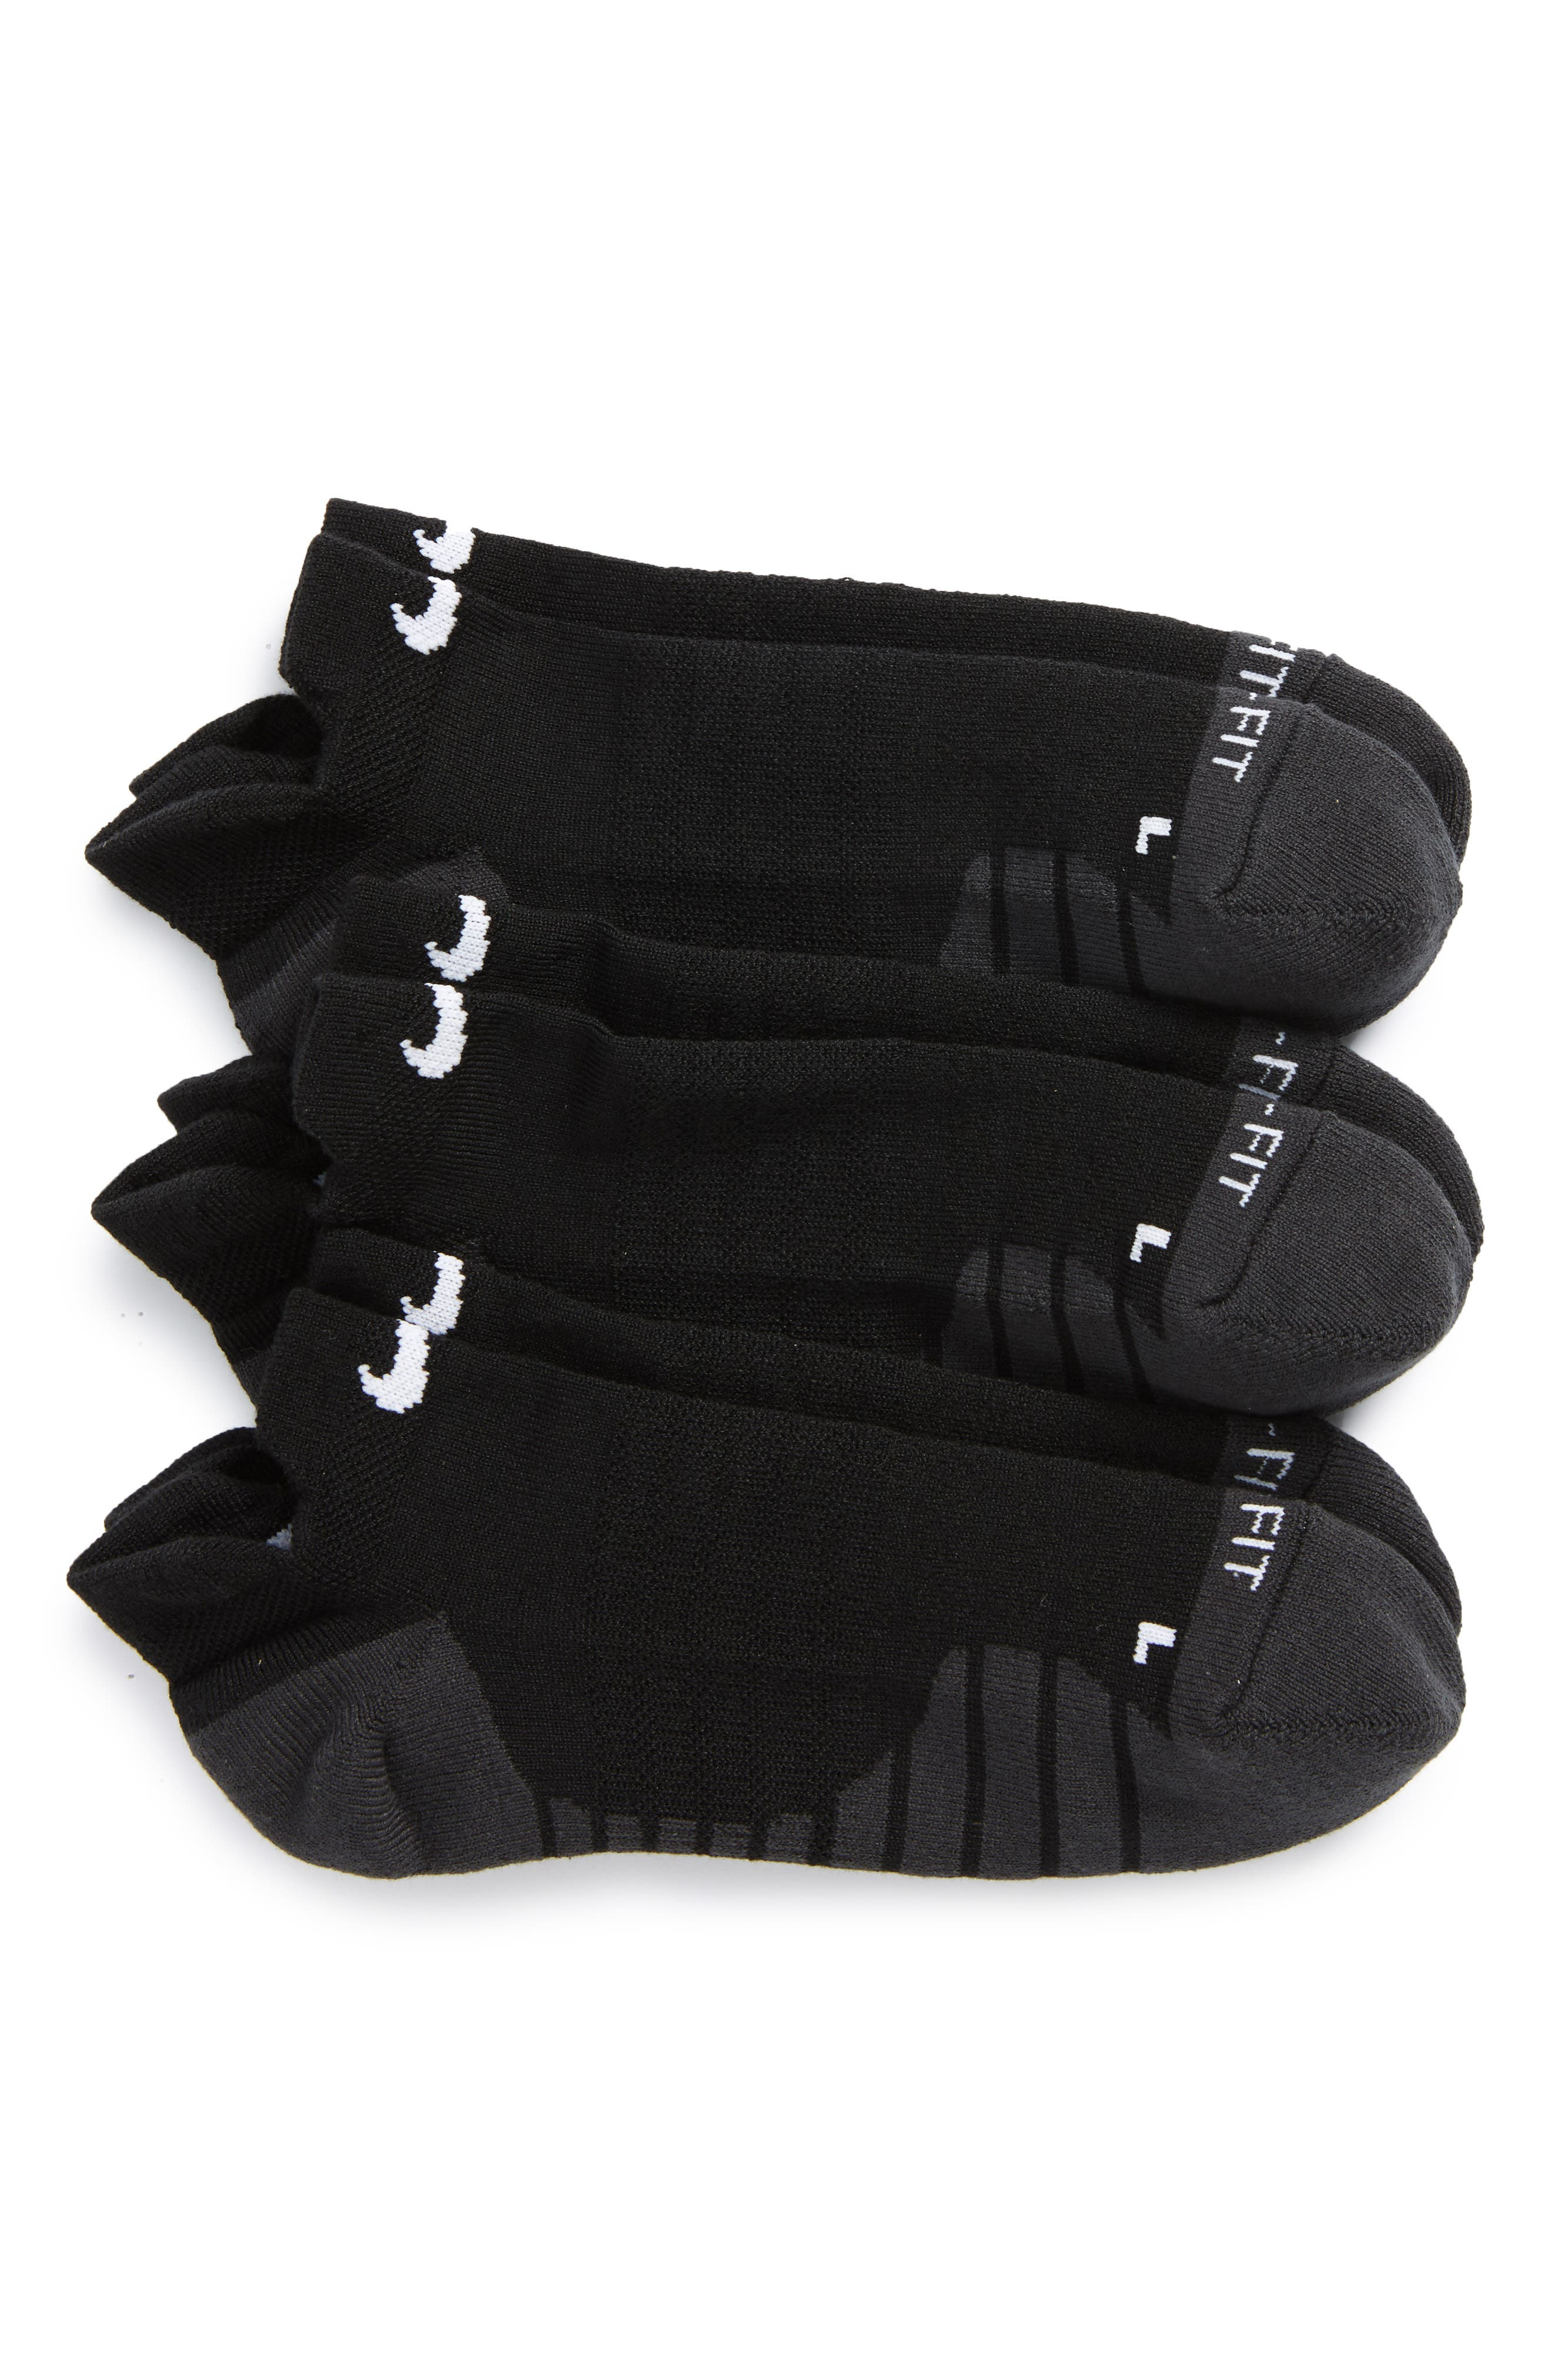 Dry 3-Pack Cushioned Low Cut Socks,                             Main thumbnail 1, color,                             Black/ Anthracite/ White